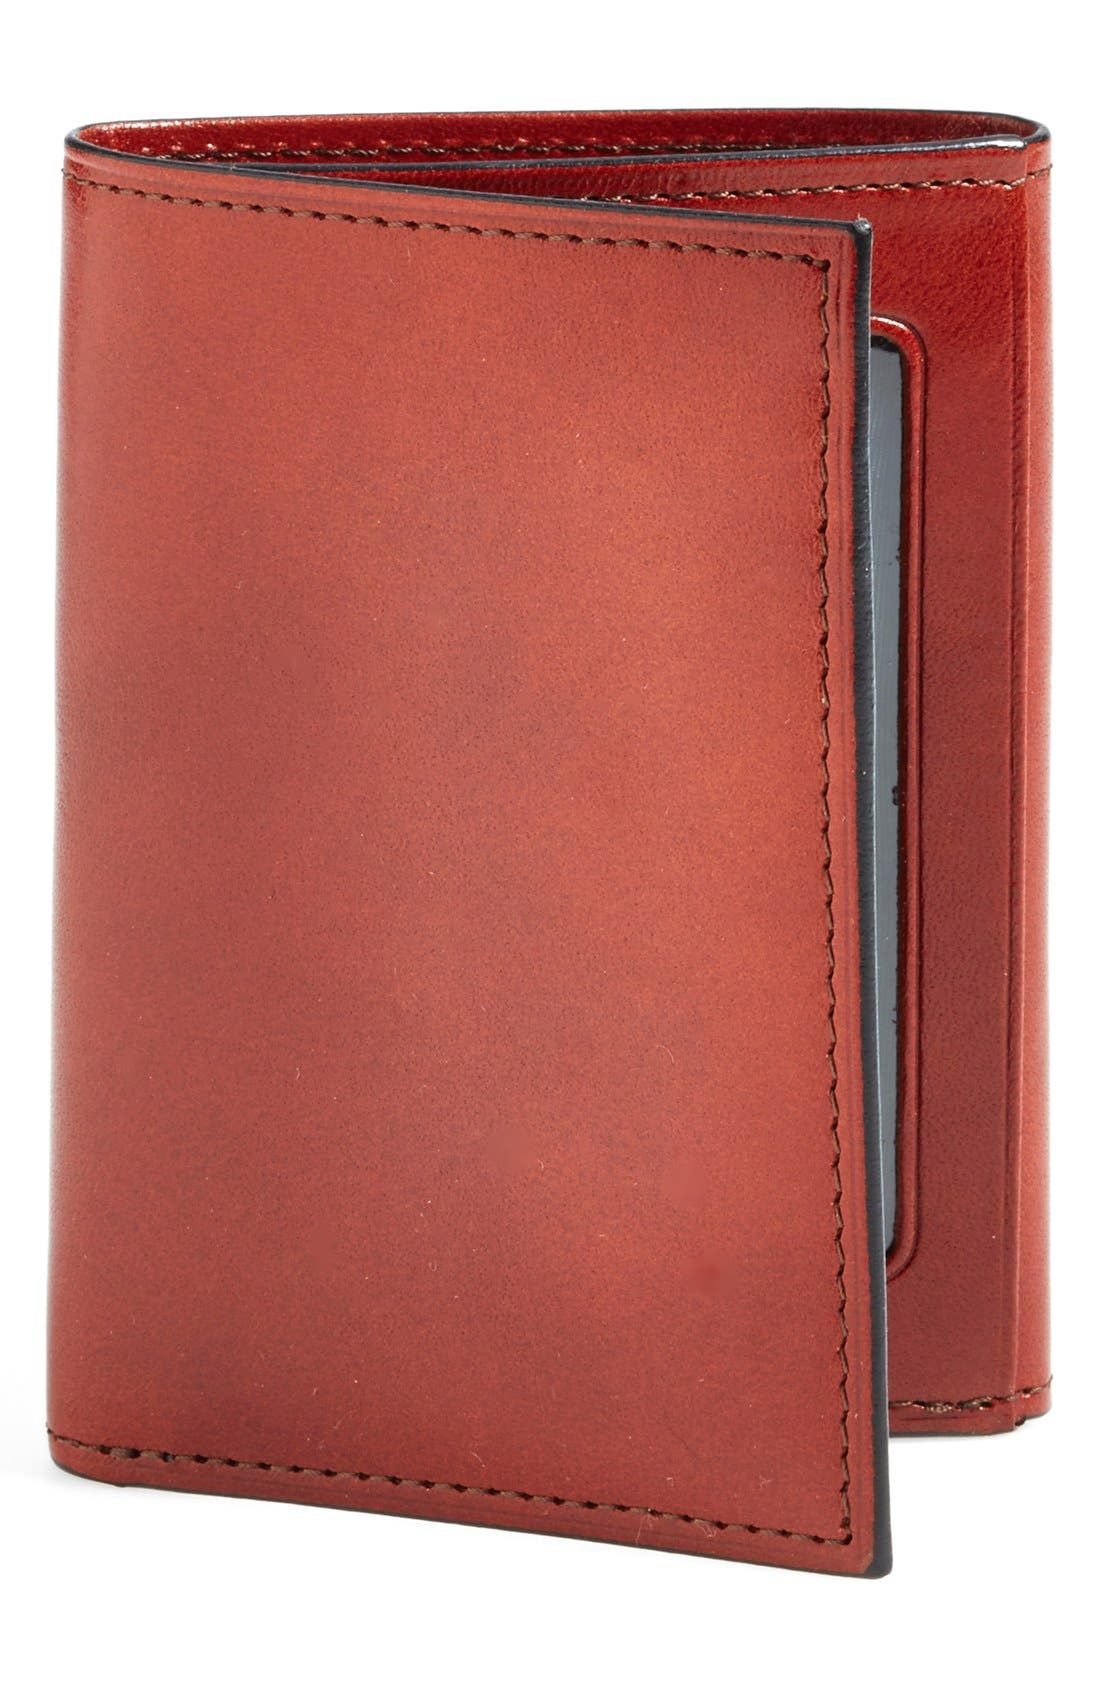 BOSCA, 'Old Leather' Trifold Wallet, Main thumbnail 1, color, COGNAC